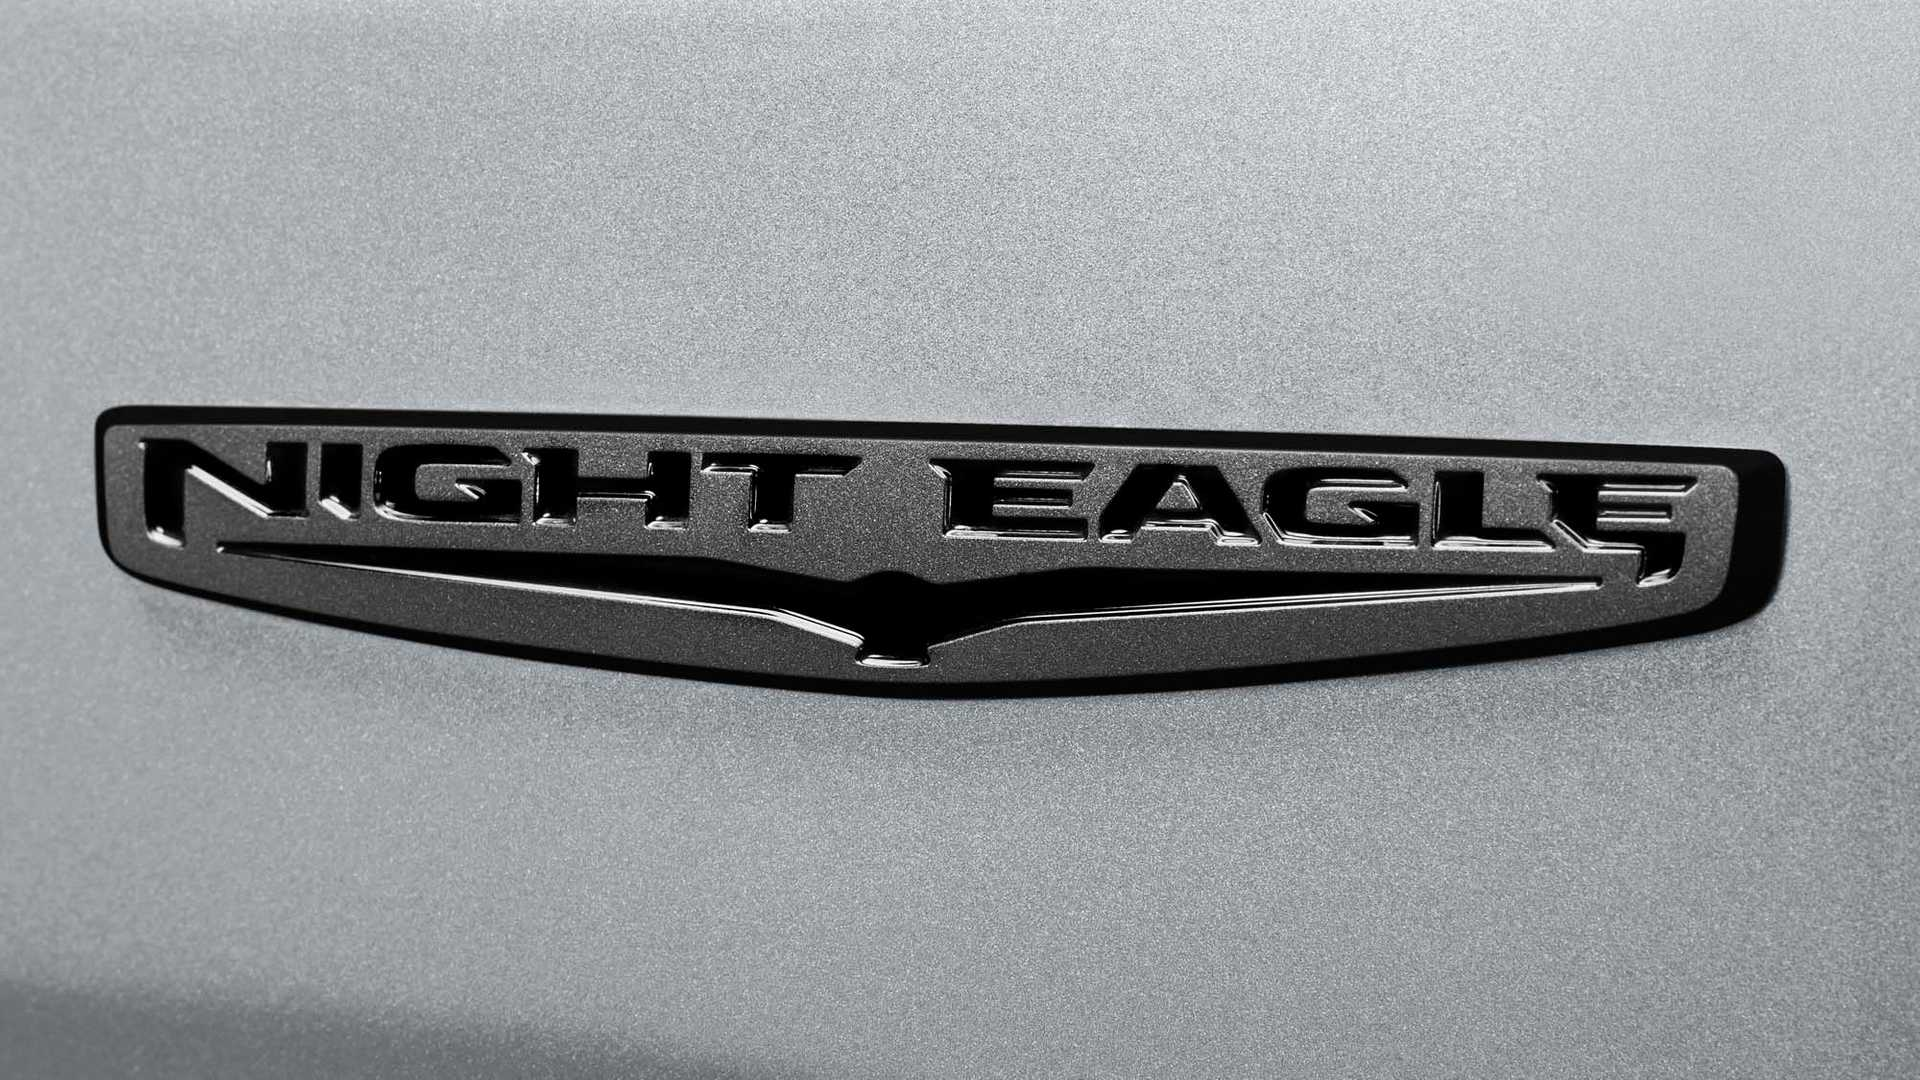 Jeep Renegade Night Eagle The Night Belongs To The Brave Jeep Uk